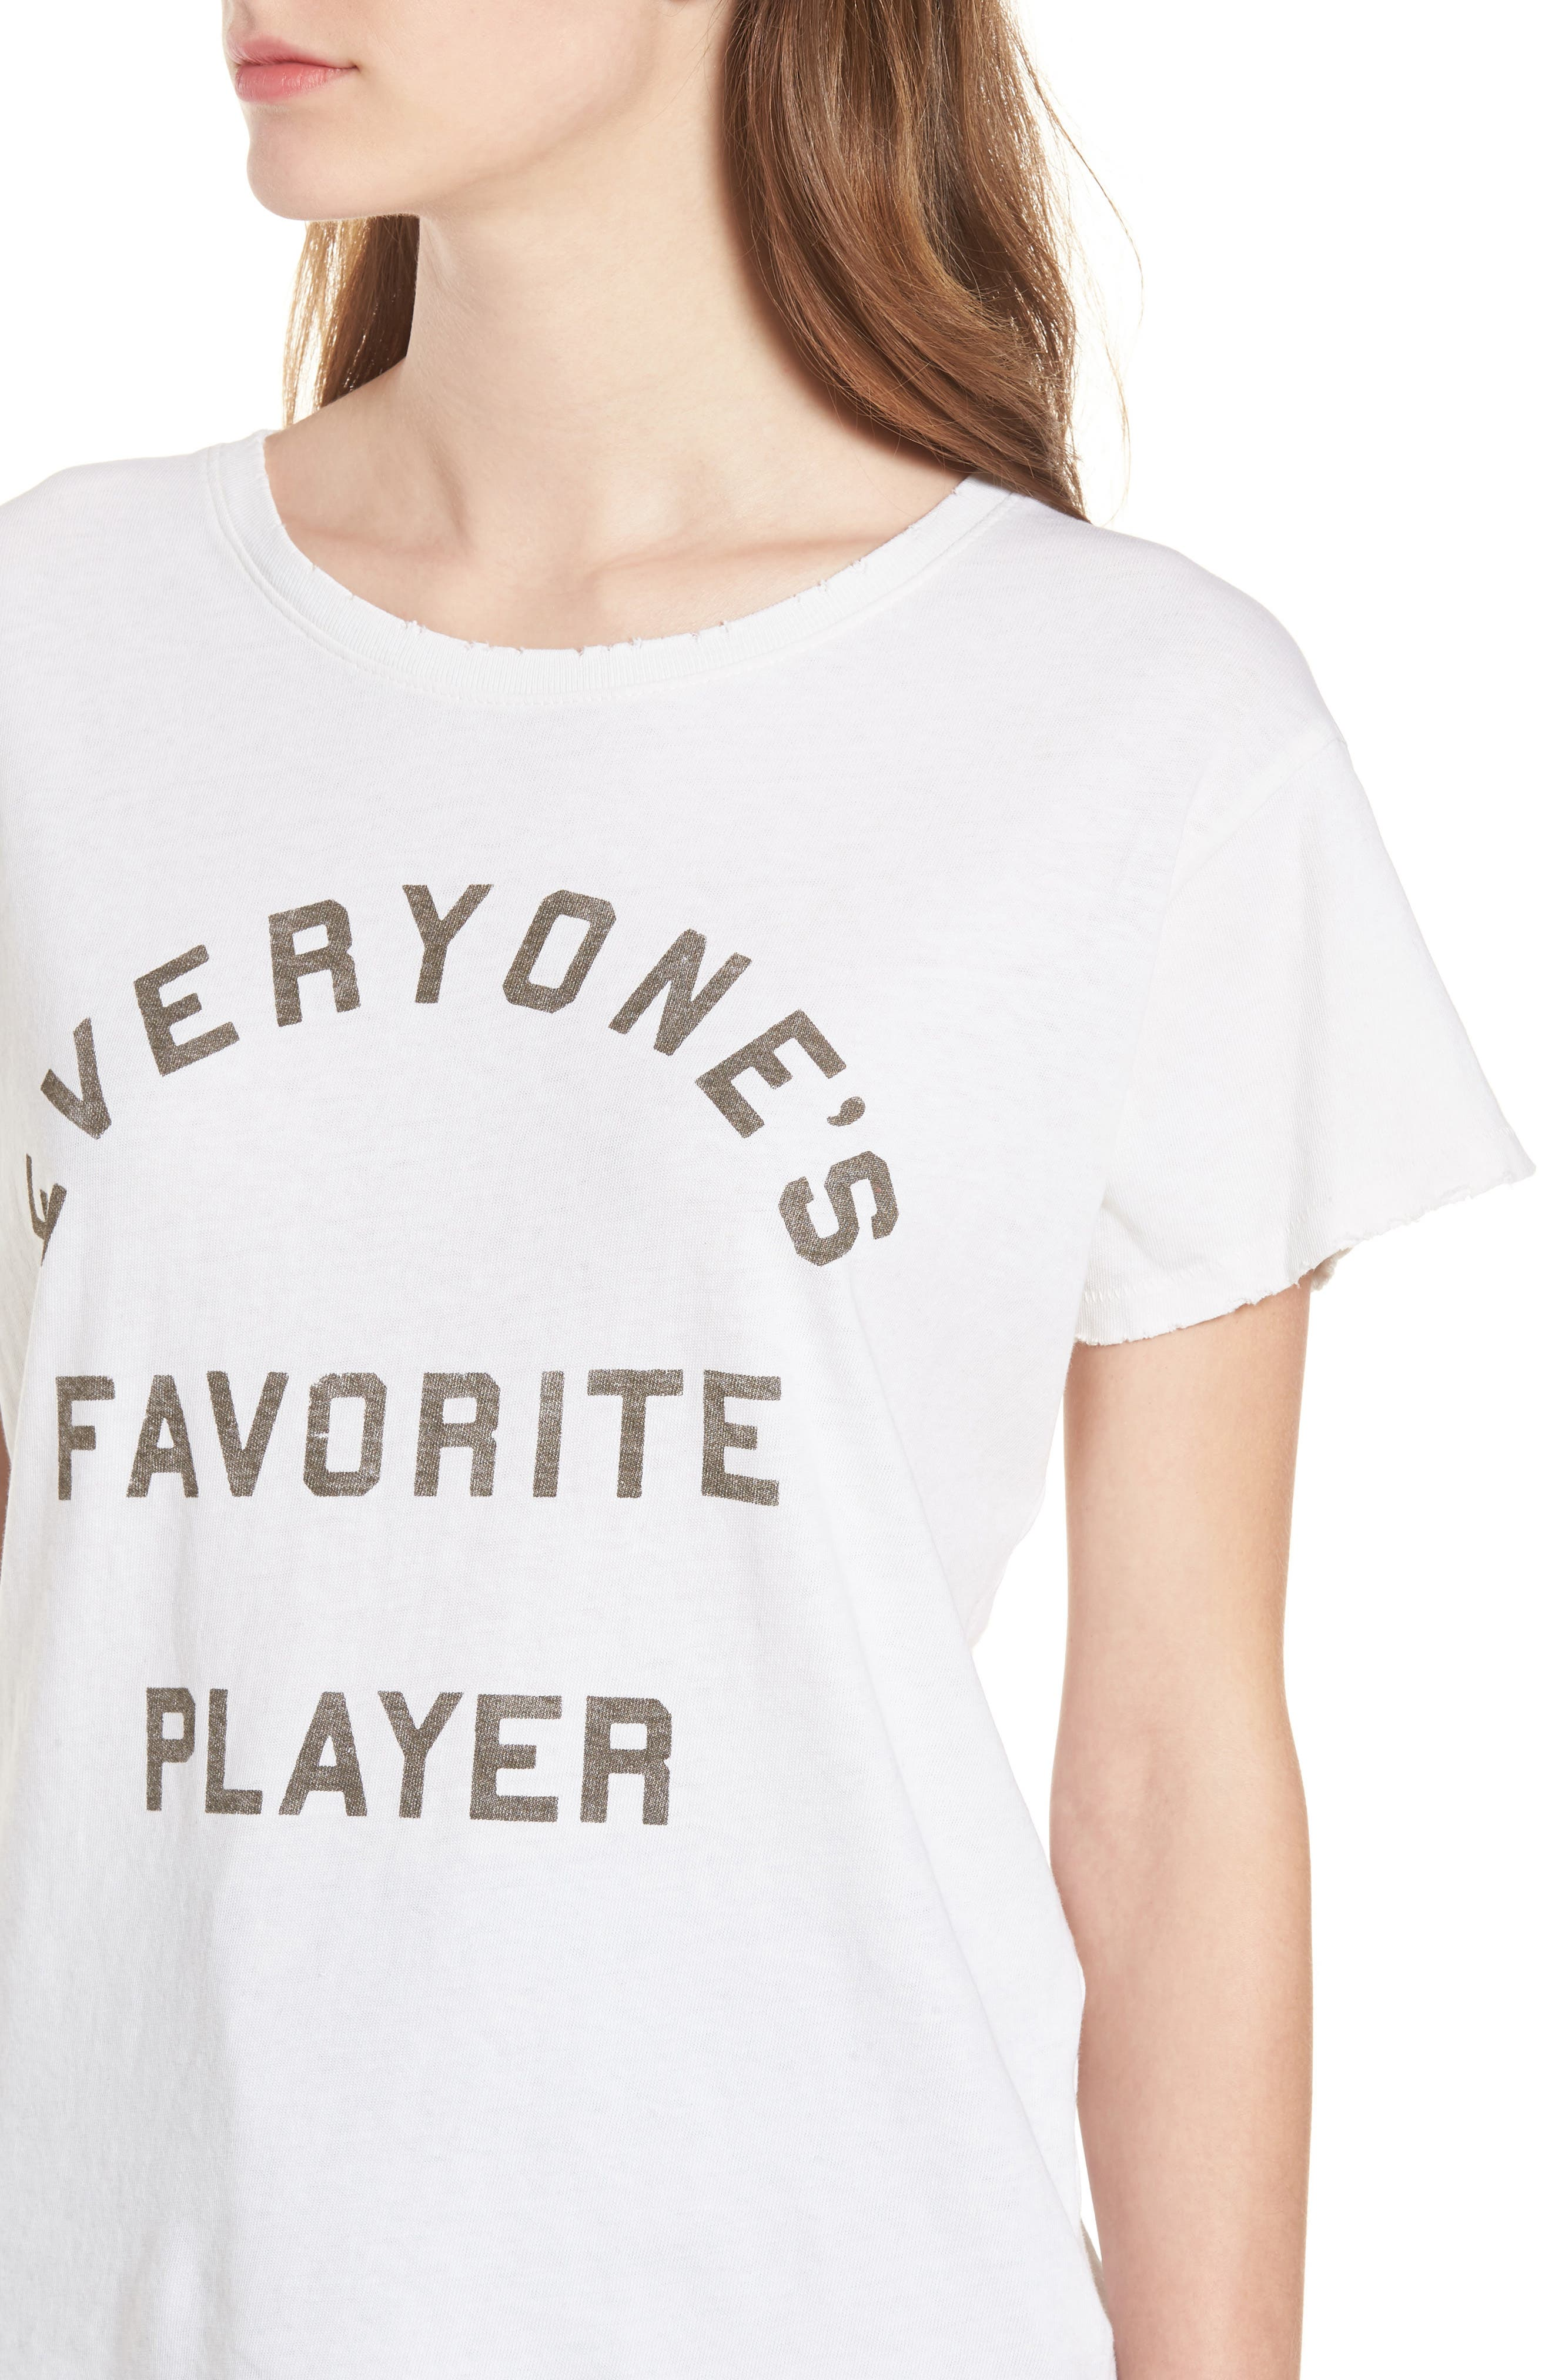 Everyone's Favorite Player Tee,                             Alternate thumbnail 4, color,                             Vintage White